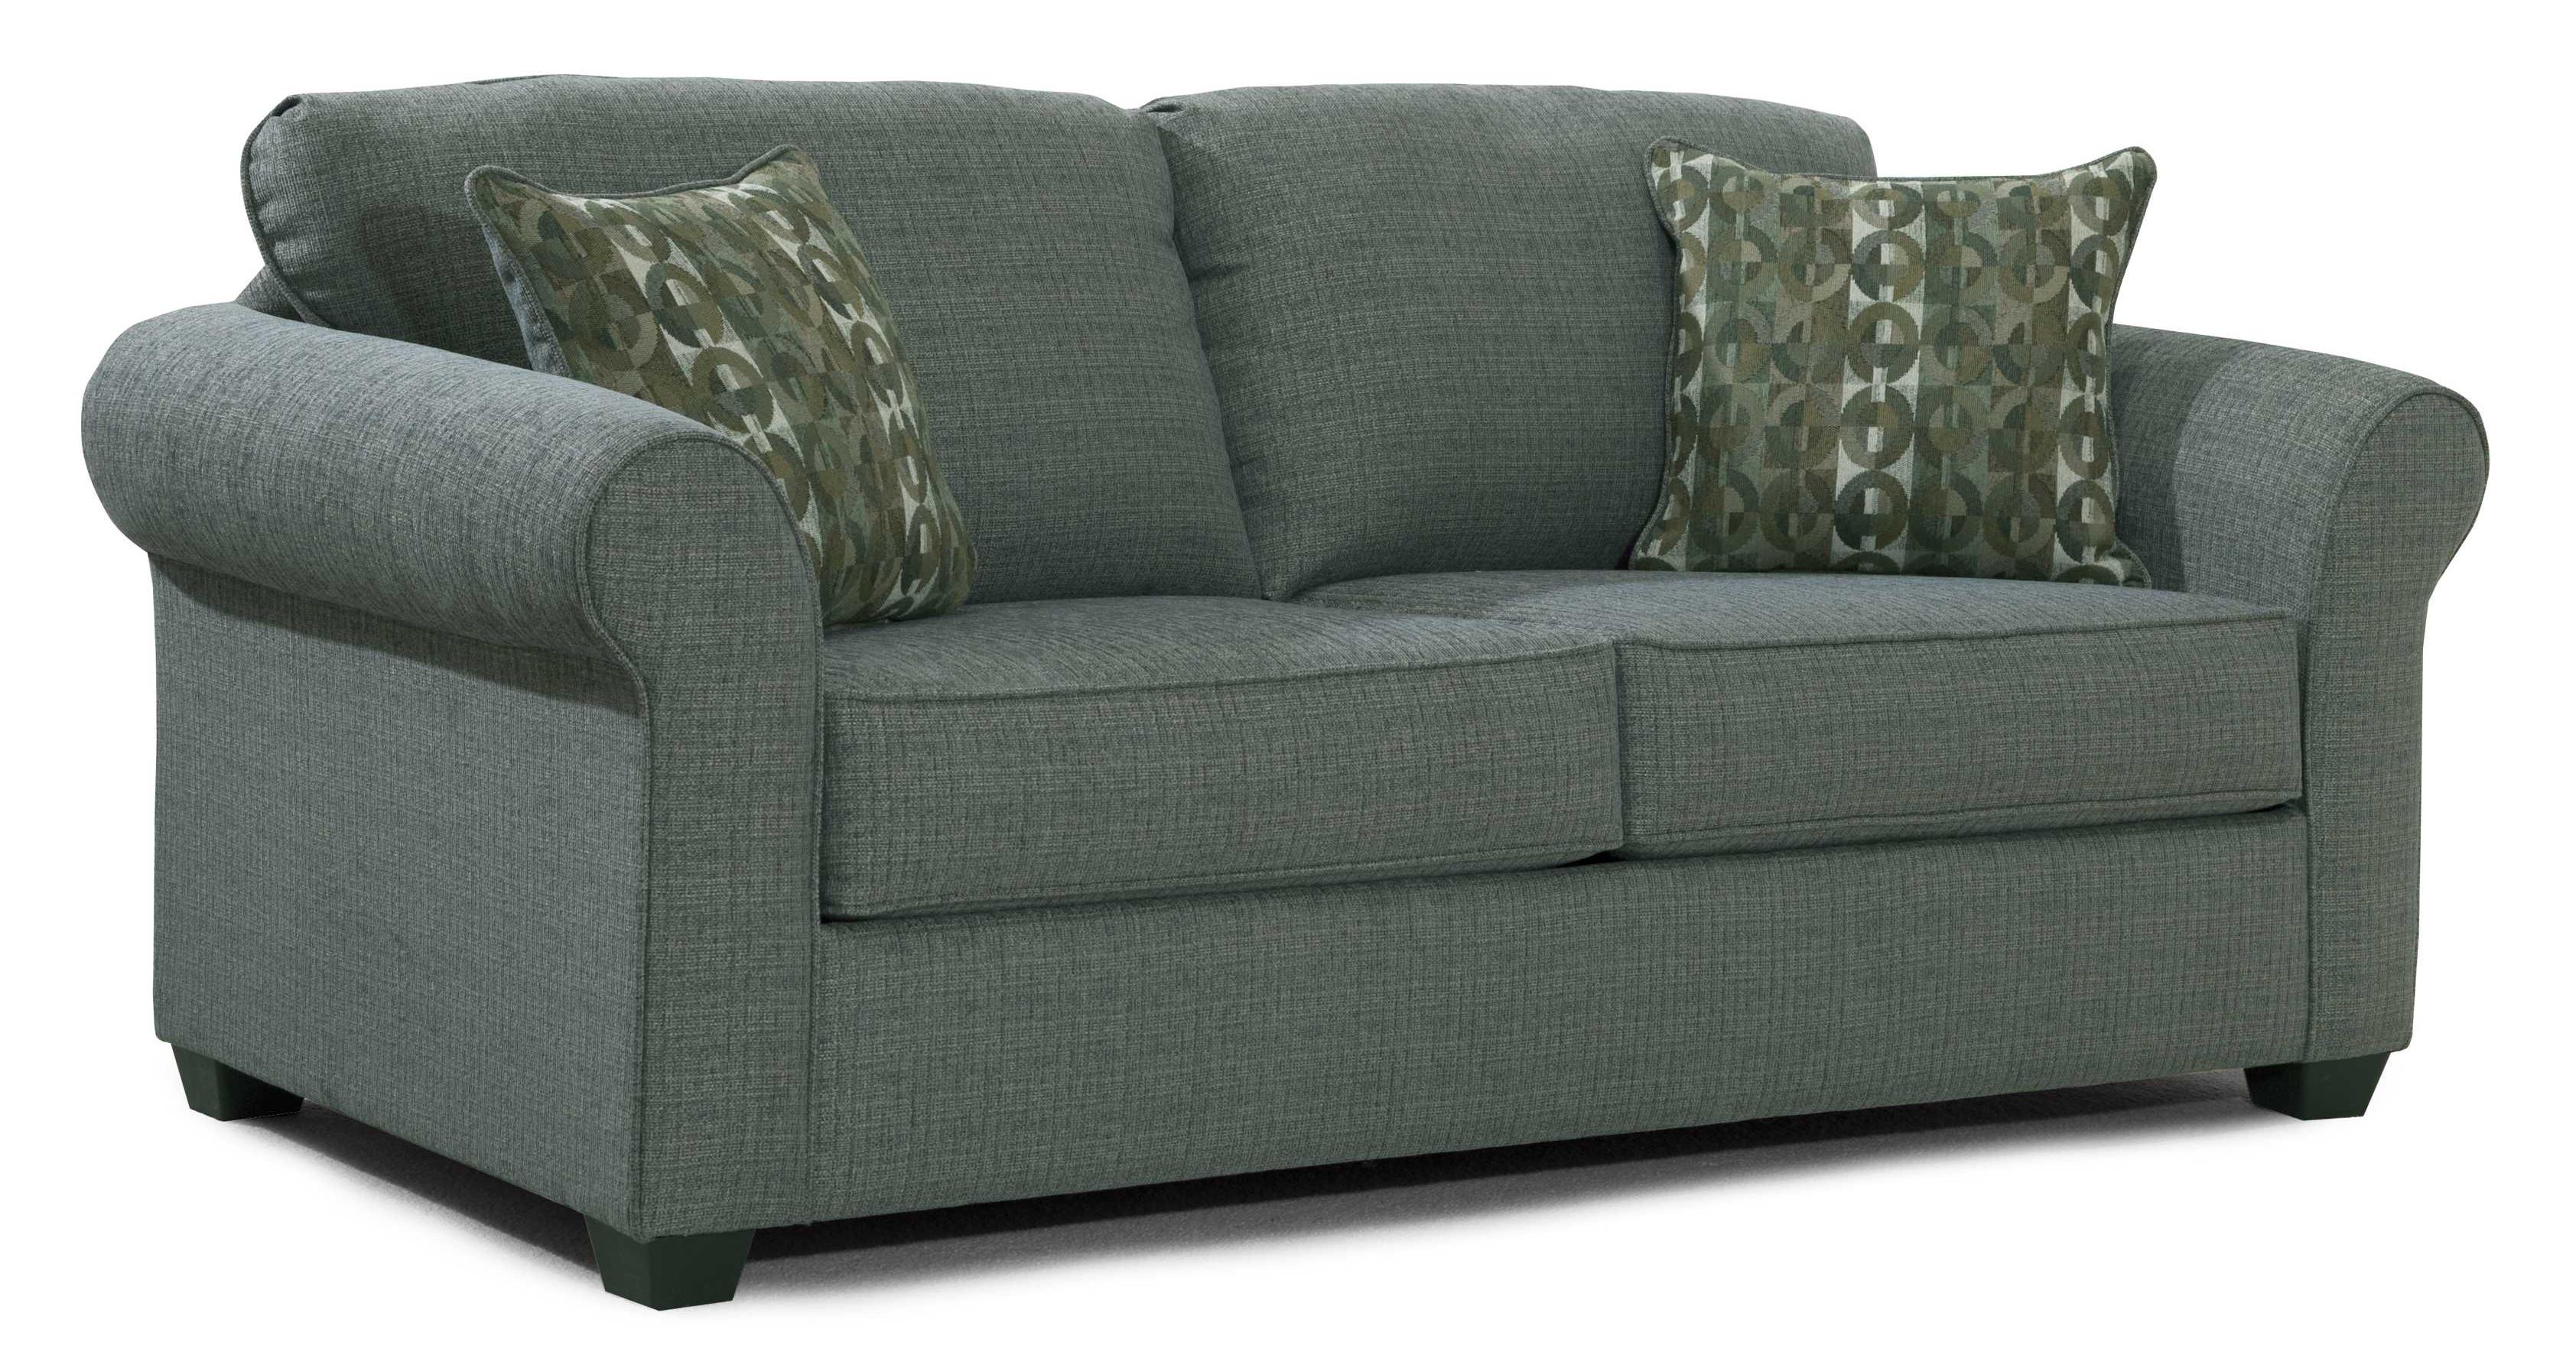 Serta Upholstery by Hughes Furniture 1750 Queen Sleeper - Item Number: 1750-IQSL